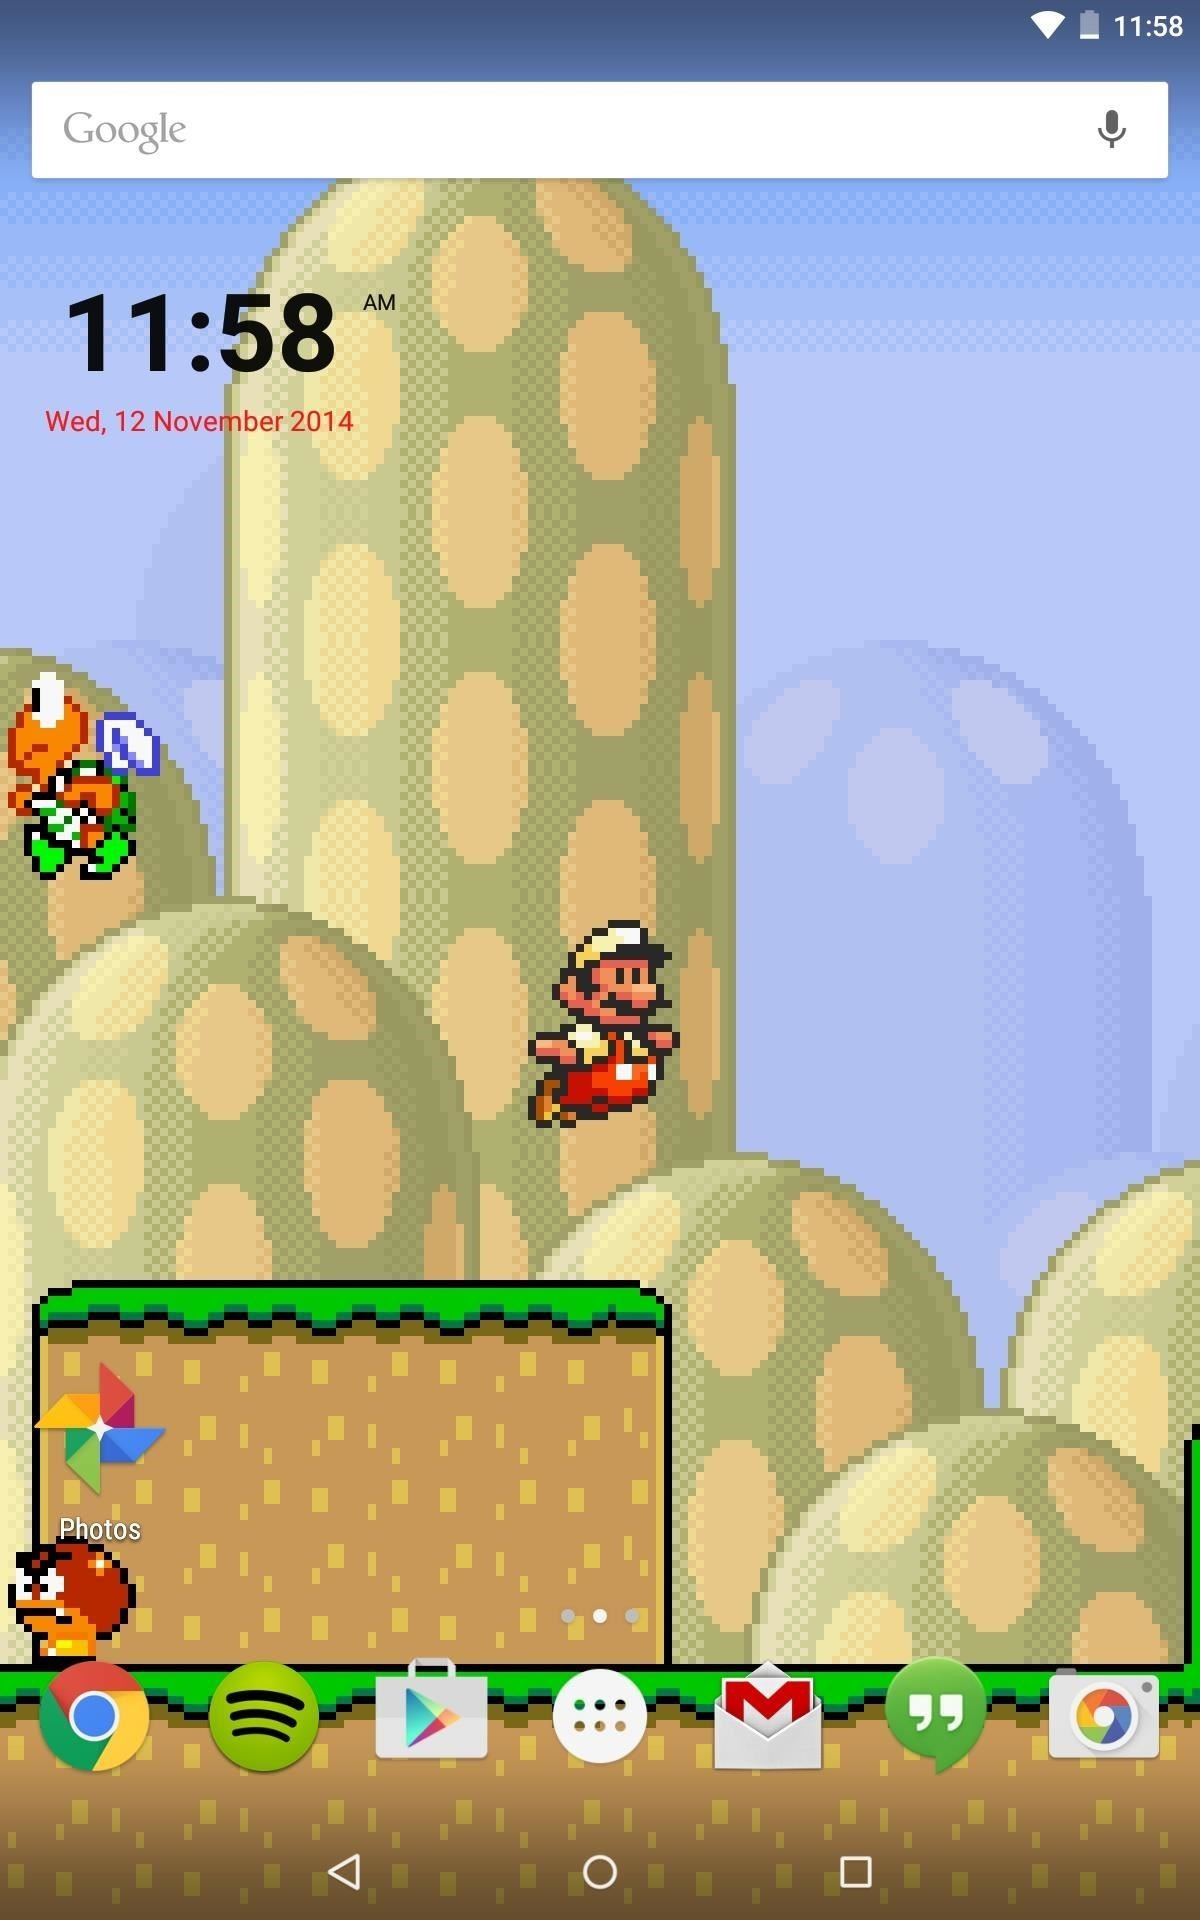 While this live wallpaper would be much cooler if it were actually  playable, it's still much better than staring at static image of Mario.